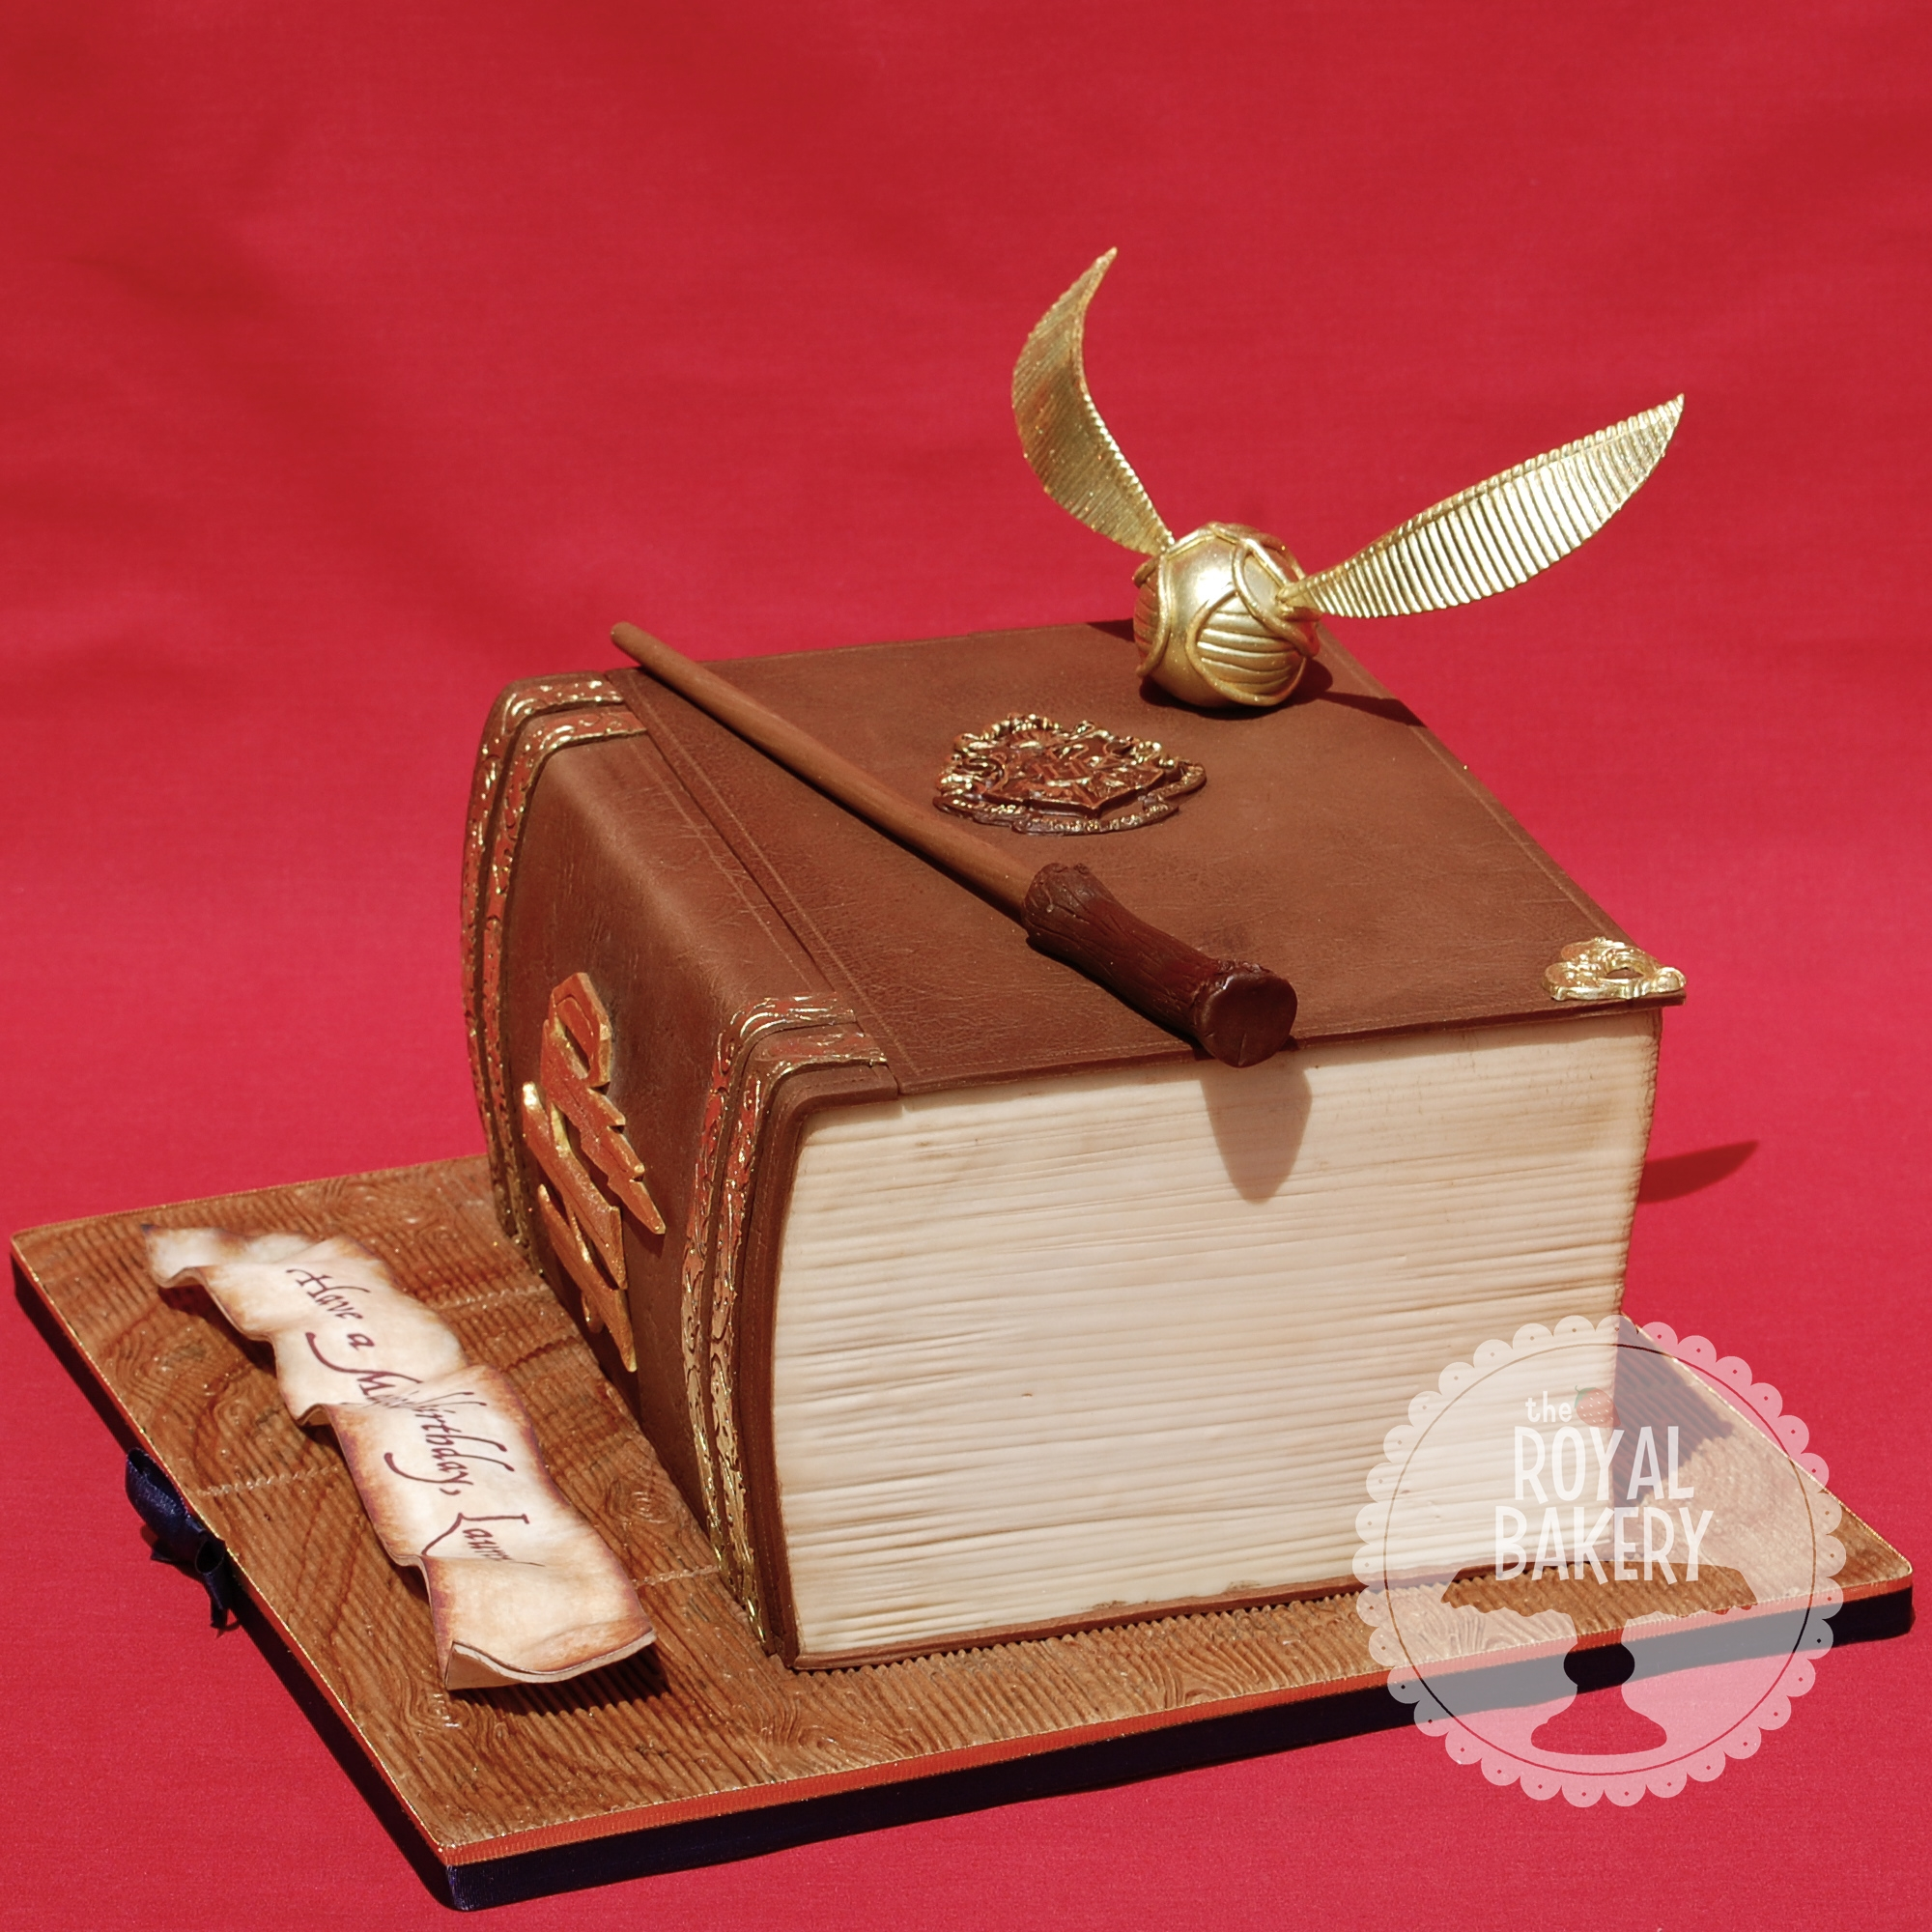 A Harry Potter Themed Book Cake For Laurens 25Th Birthday ...